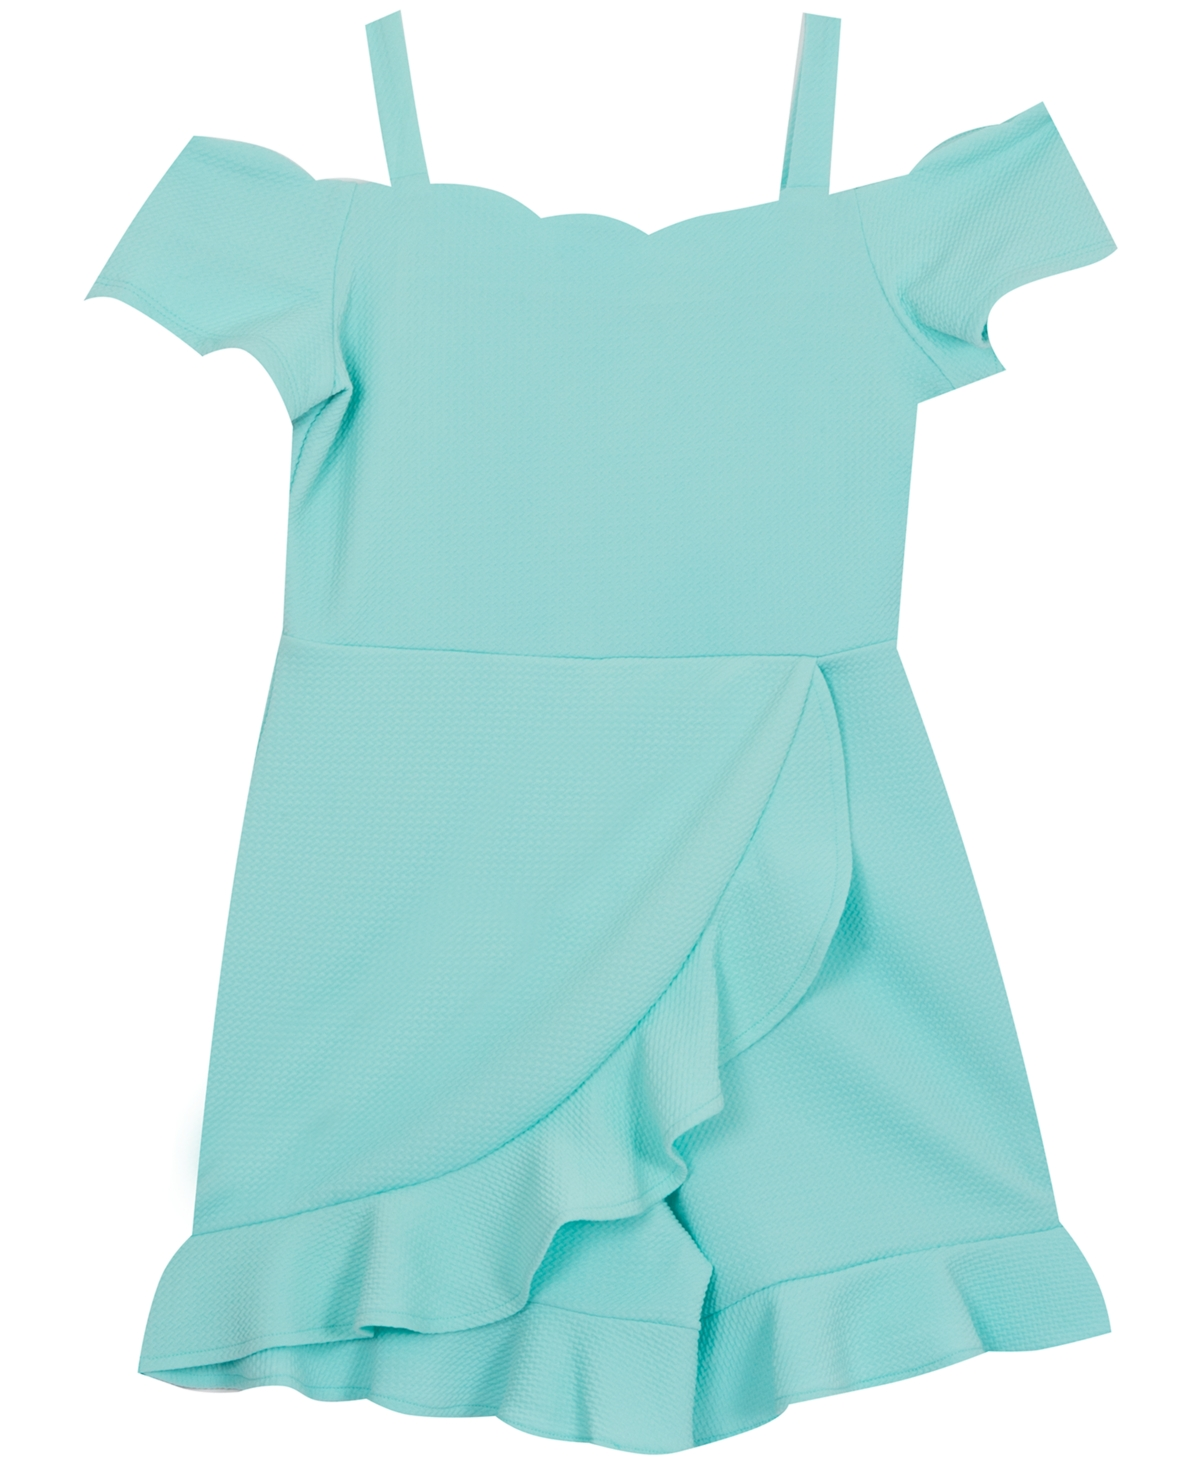 17325741 fpx - Kids & Baby Clothing